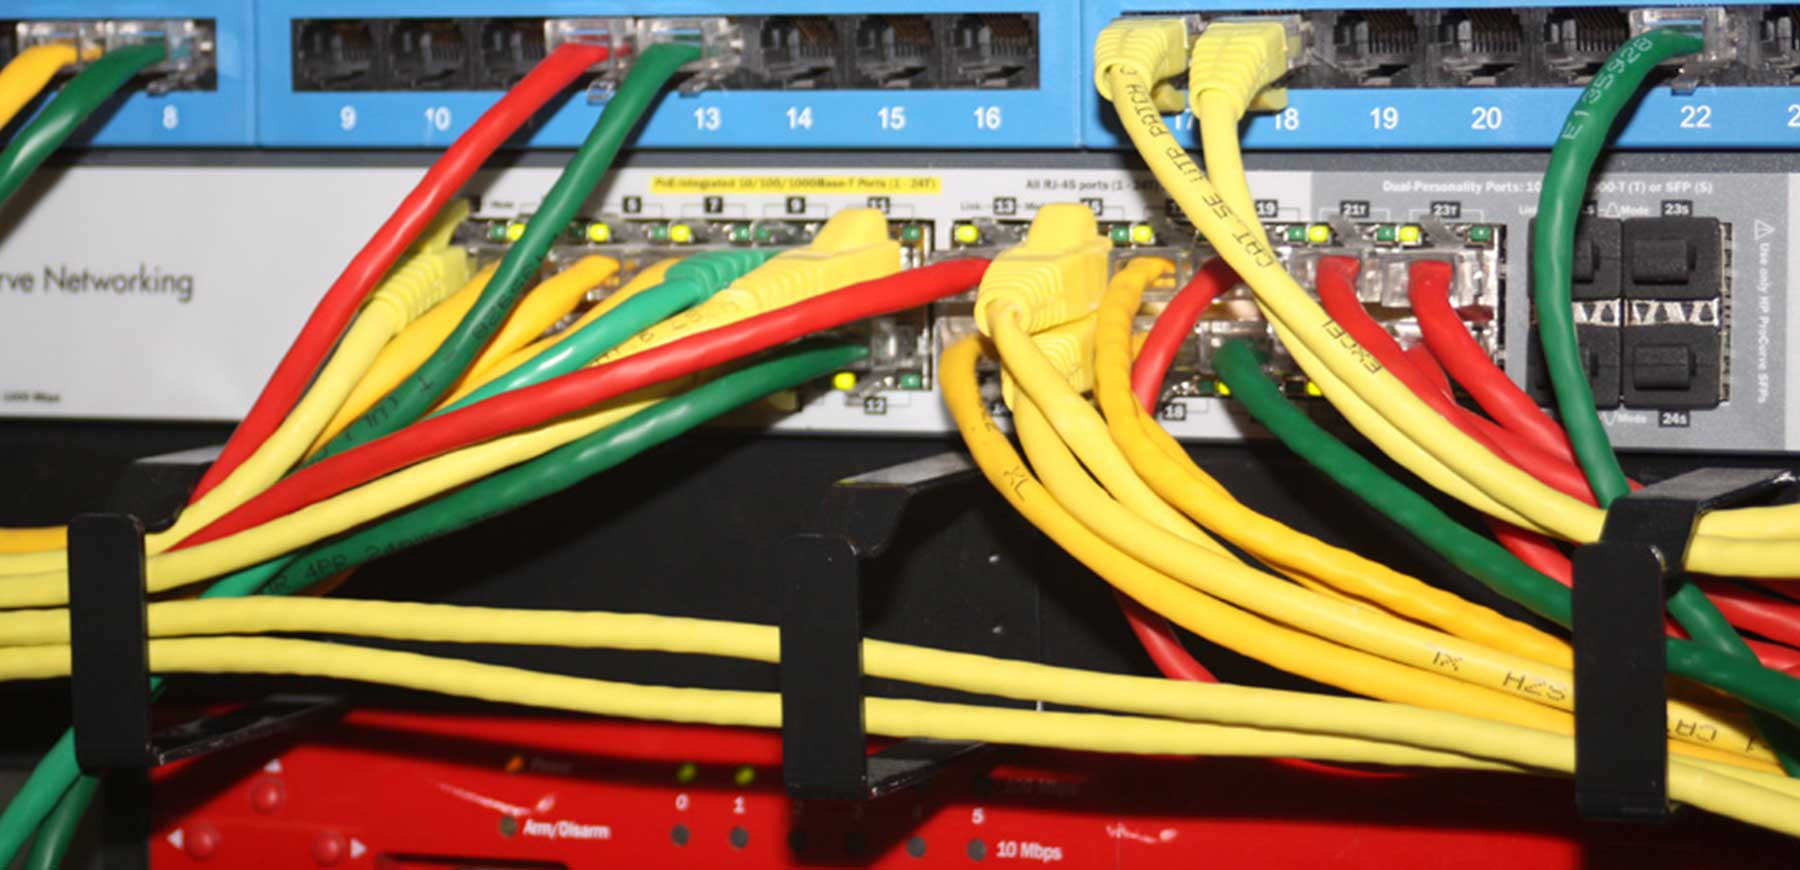 Networking Electrical School It Support Wiring Multiple Ethernet Switches Data Cabling With Gigabit Or 10gb Connectivity Over Copper Fibre Networks Standard Switching Power Poe For Your